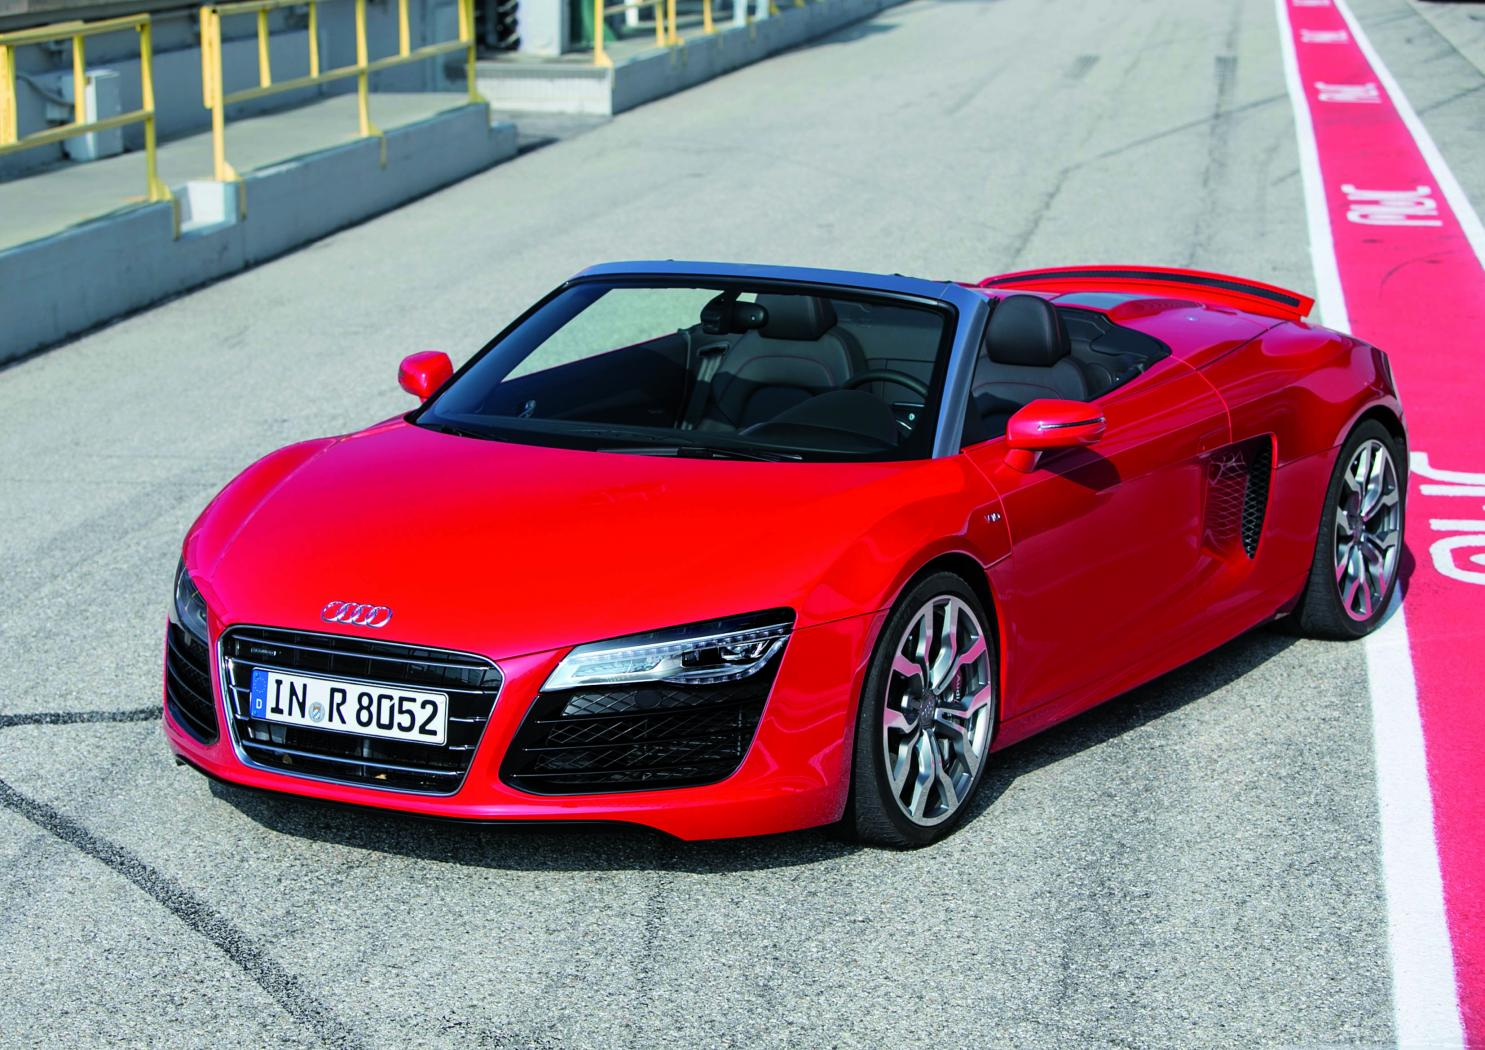 la plus belle des sportives d audi l audi r8 spyder page 1 audi r8 forum. Black Bedroom Furniture Sets. Home Design Ideas